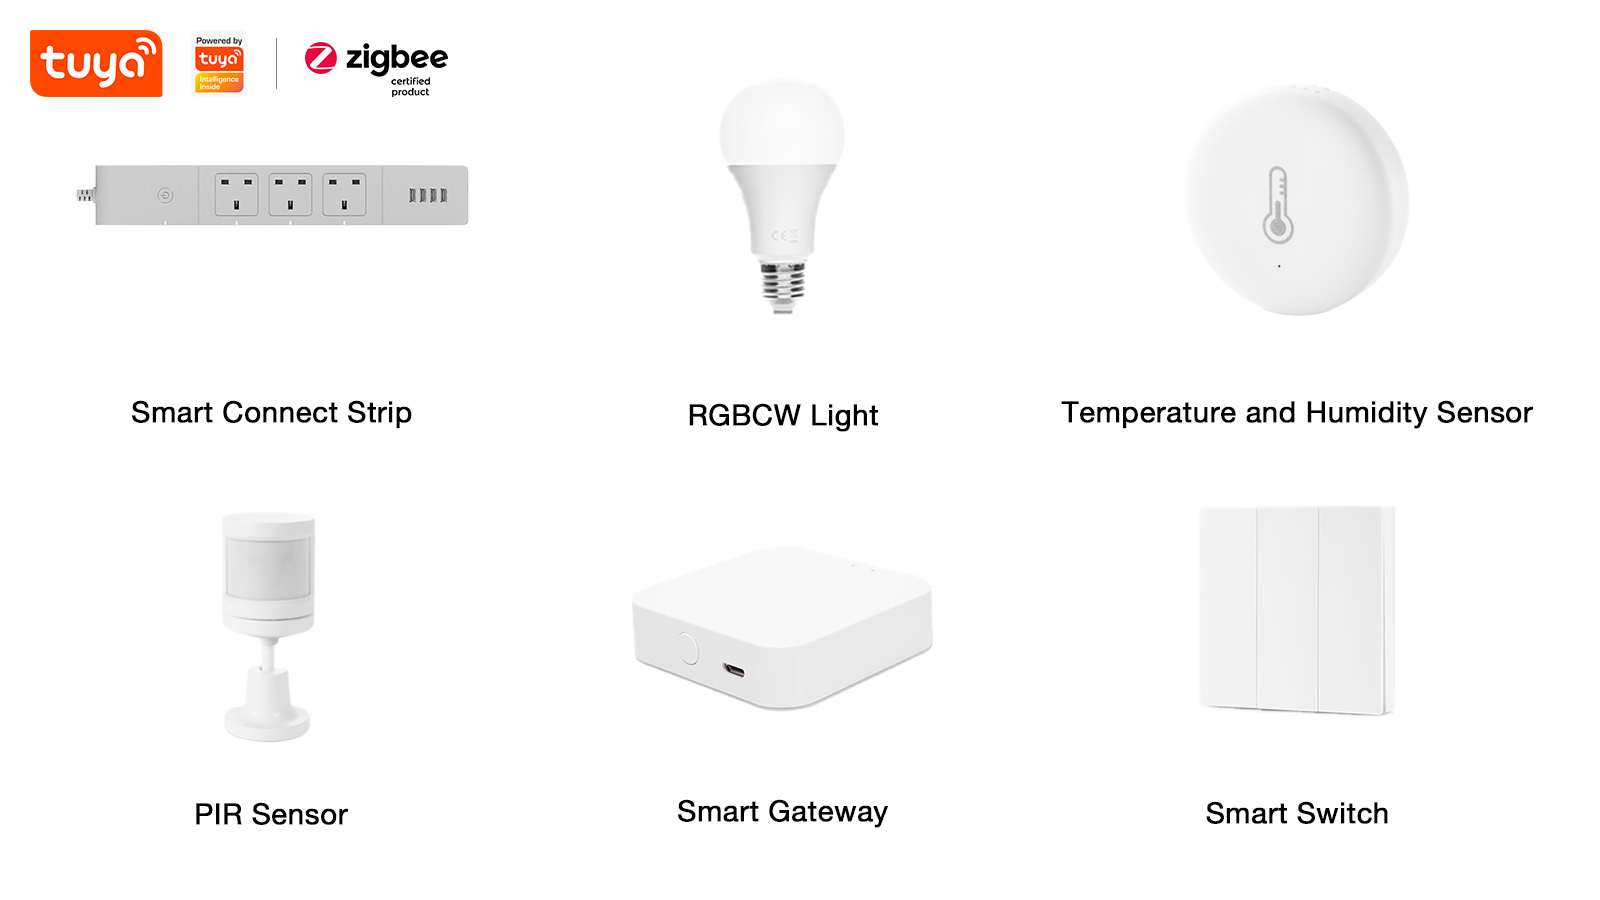 Zigbee certified products that are powered by Tuya